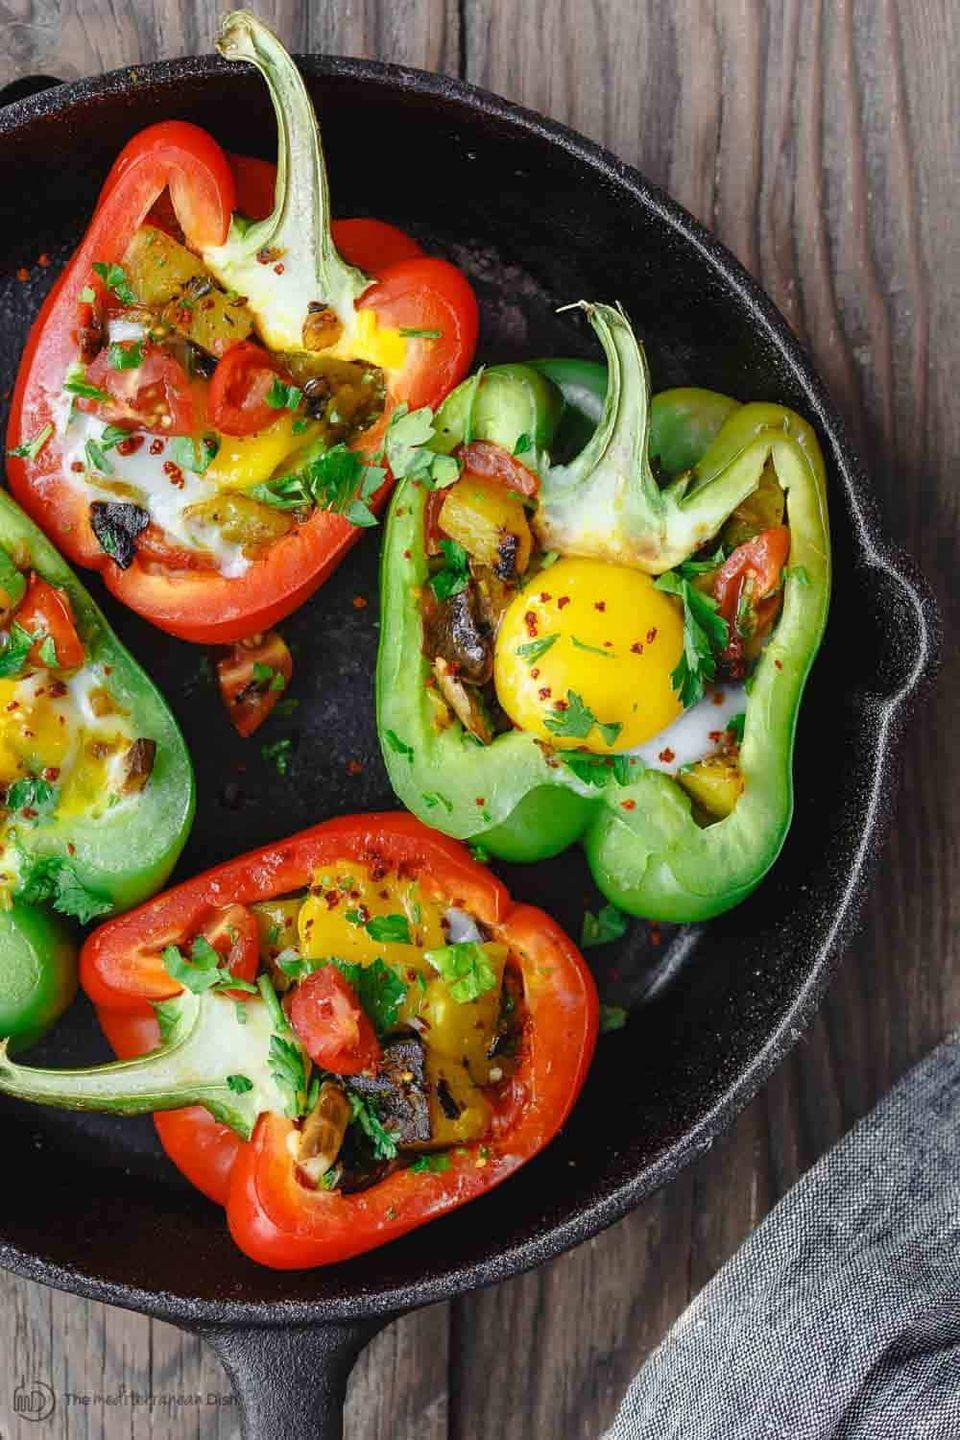 """<p>Colorful bell peppers make the perfect vessel for vegetarian potato hash and a deliciously runny egg. No toast needed!</p><p><strong>Get the recipe at <a href=""""https://www.themediterraneandish.com/easy-stuffed-peppers/"""" rel=""""nofollow noopener"""" target=""""_blank"""" data-ylk=""""slk:The Mediterranean Dish"""" class=""""link rapid-noclick-resp"""">The Mediterranean Dish</a>.</strong></p><p><strong><a class=""""link rapid-noclick-resp"""" href=""""https://go.redirectingat.com?id=74968X1596630&url=https%3A%2F%2Fwww.walmart.com%2Fsearch%2F%3Fquery%3Dpioneer%2Bwoman%2Bcast%2Biron%2Bskillet&sref=https%3A%2F%2Fwww.thepioneerwoman.com%2Ffood-cooking%2Fmeals-menus%2Fg34922086%2Fhealthy-breakfast-ideas%2F"""" rel=""""nofollow noopener"""" target=""""_blank"""" data-ylk=""""slk:SHOP CAST IRON SKILLETS"""">SHOP CAST IRON SKILLETS</a><br></strong></p>"""